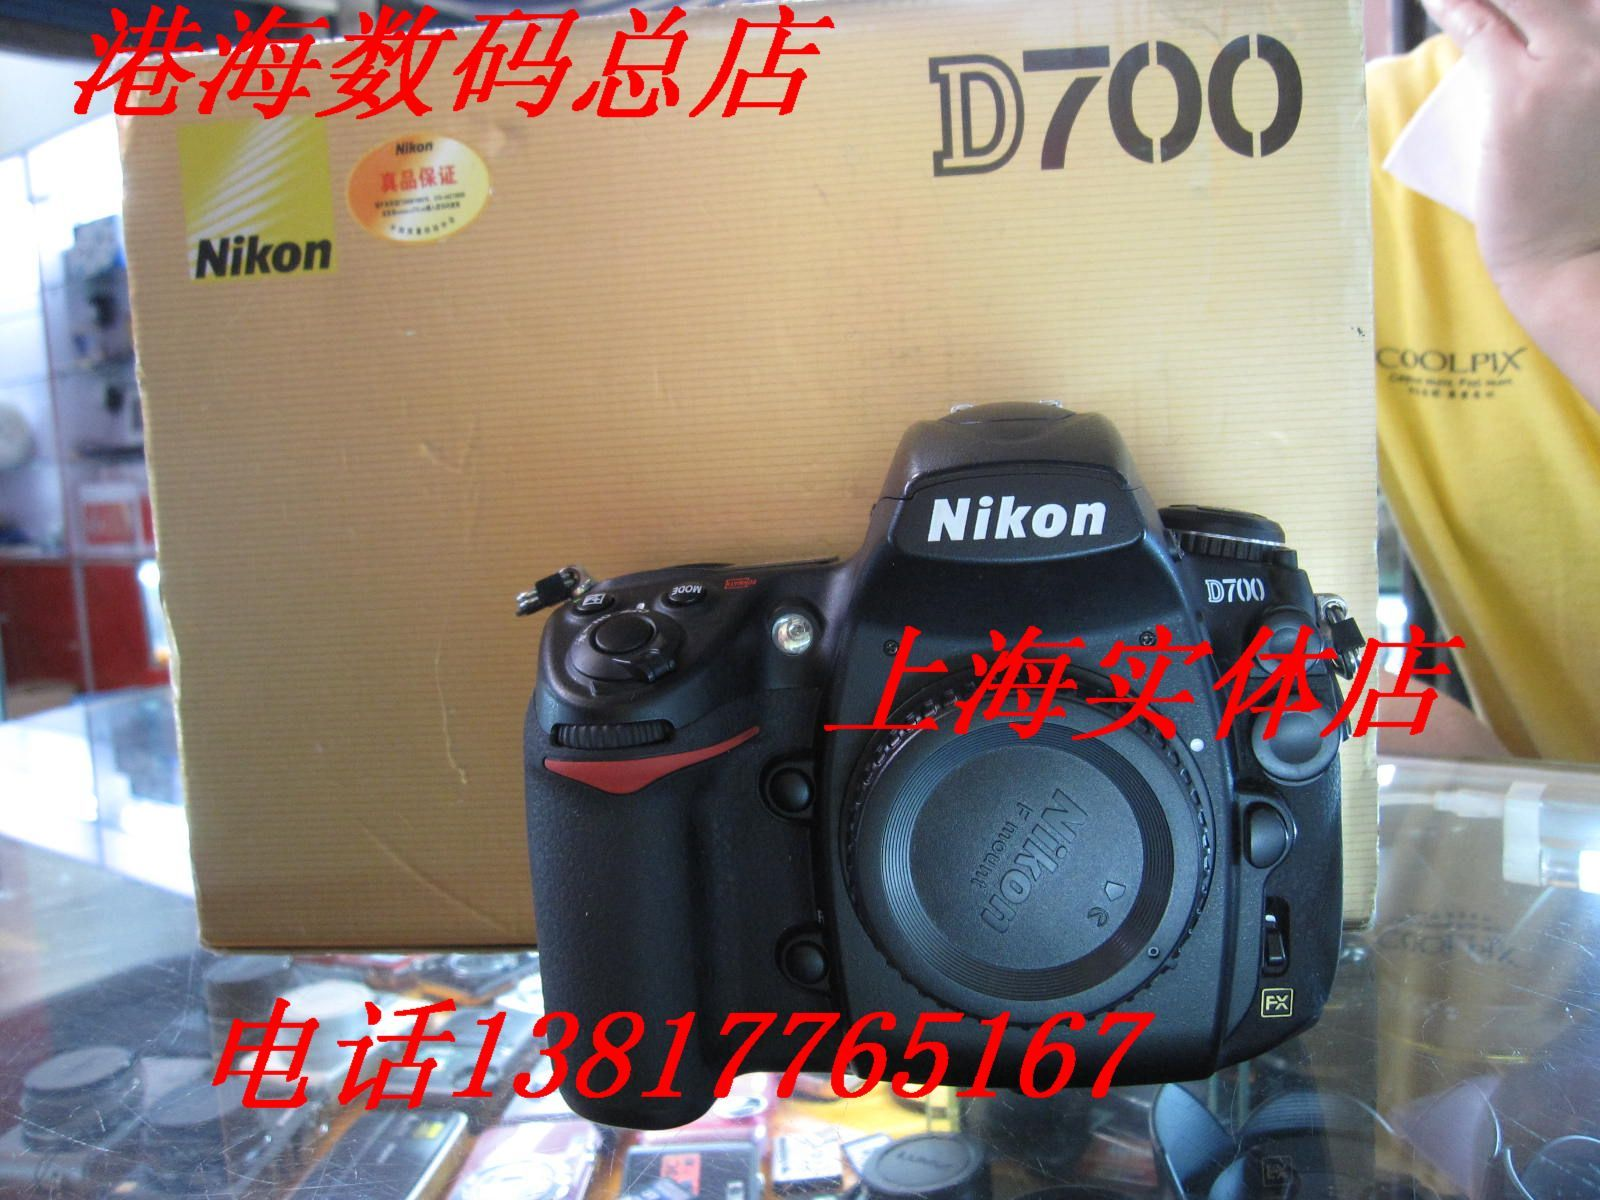 New shutter nikon D700 standalone 99 200 times Home furnishings support for D90 D300 D7000